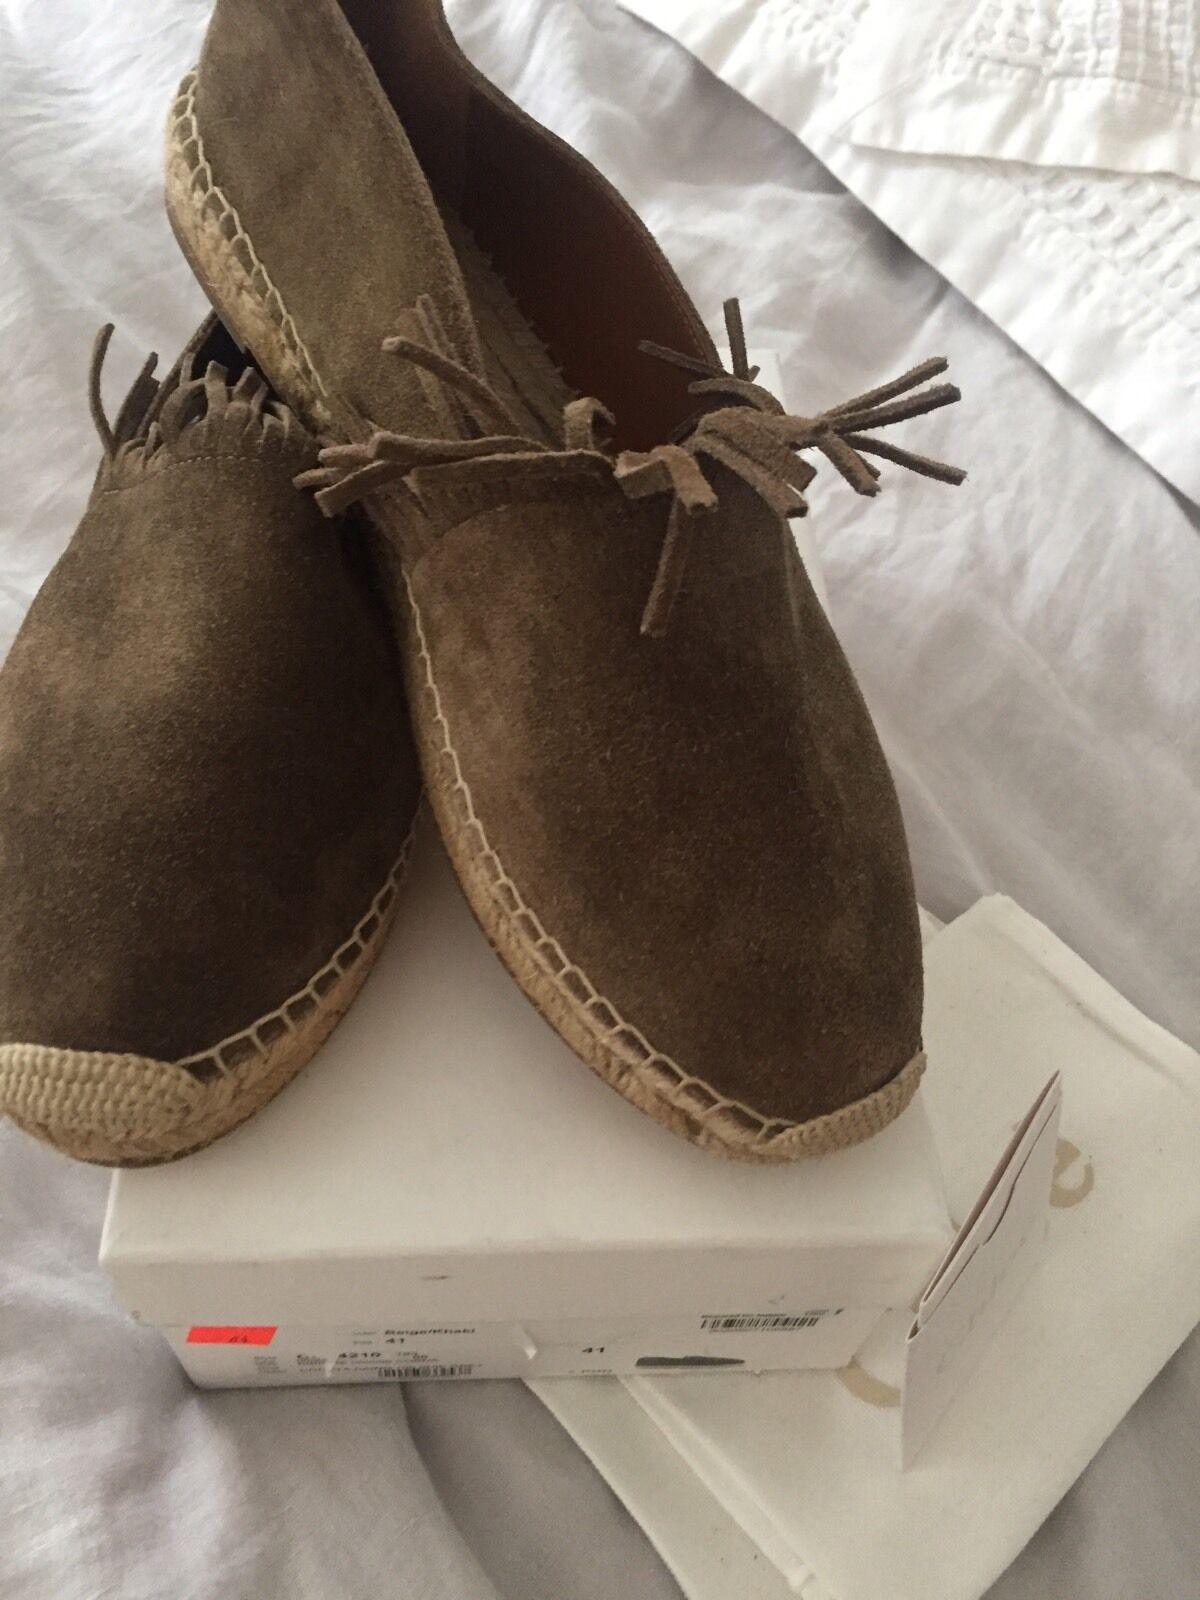 Chloe, Fringed Suede Espadrilles in Beige Khaki, Size 41 Brand New